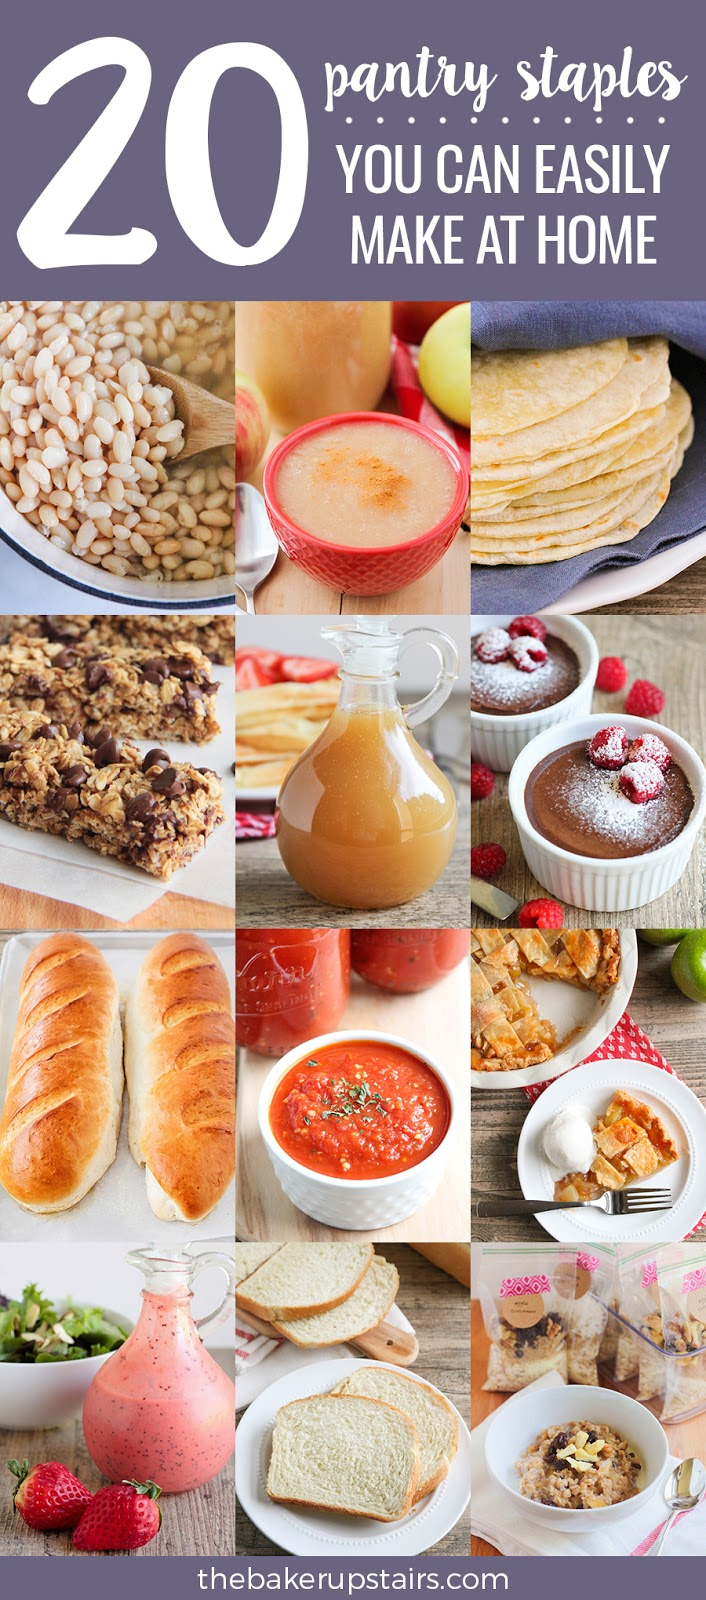 20 pantry staples you can make at home that are way better than store-bought!